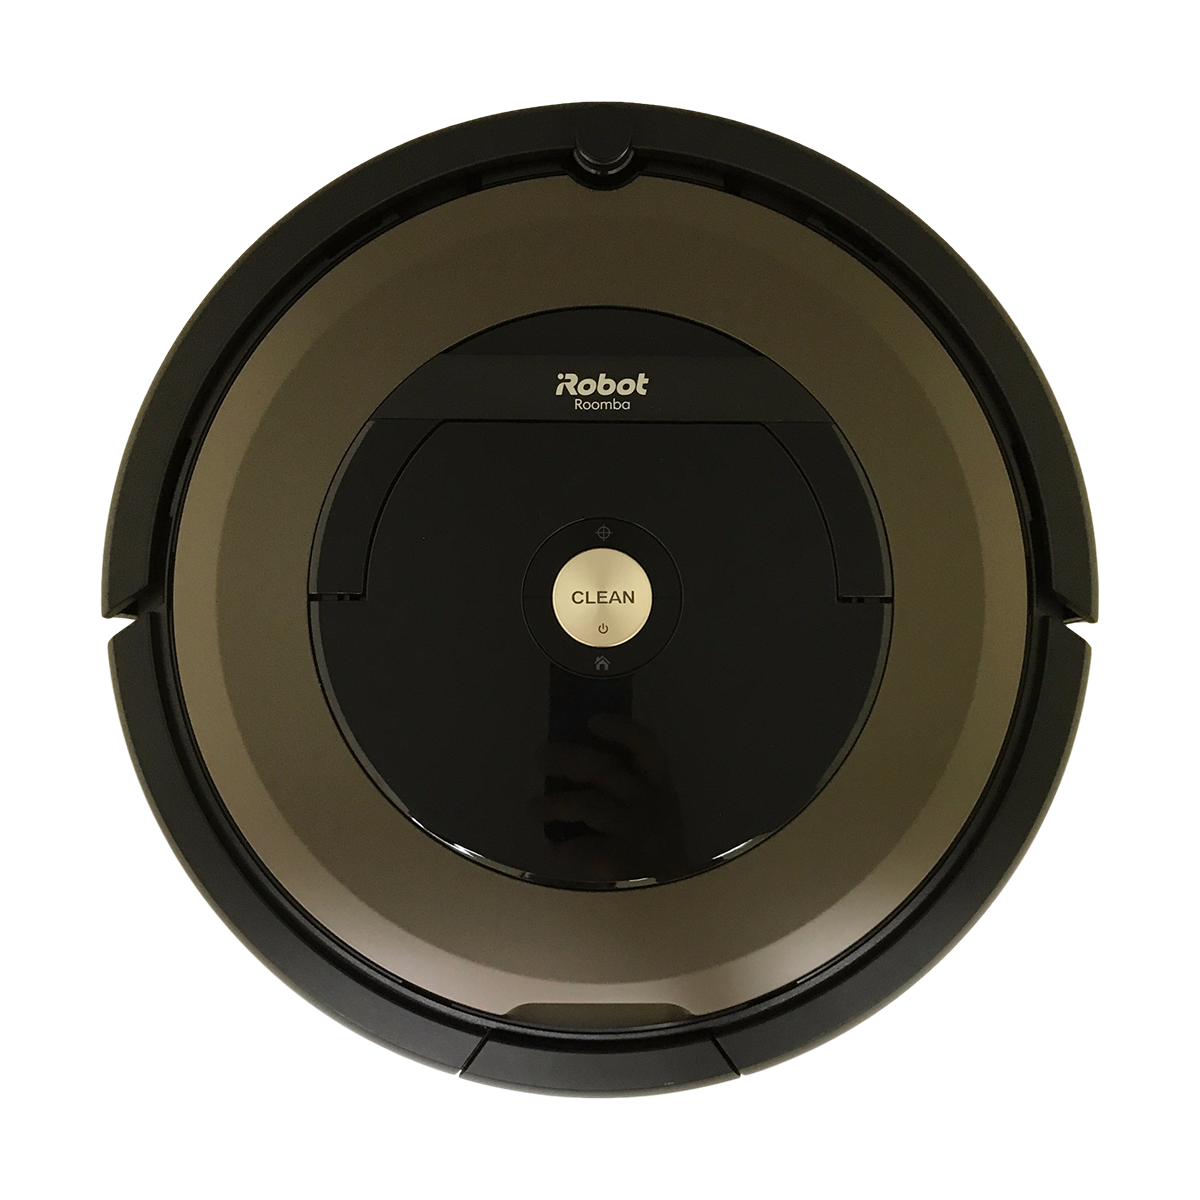 iRobot Roomba 890 Vacuum Cleaning Robot.